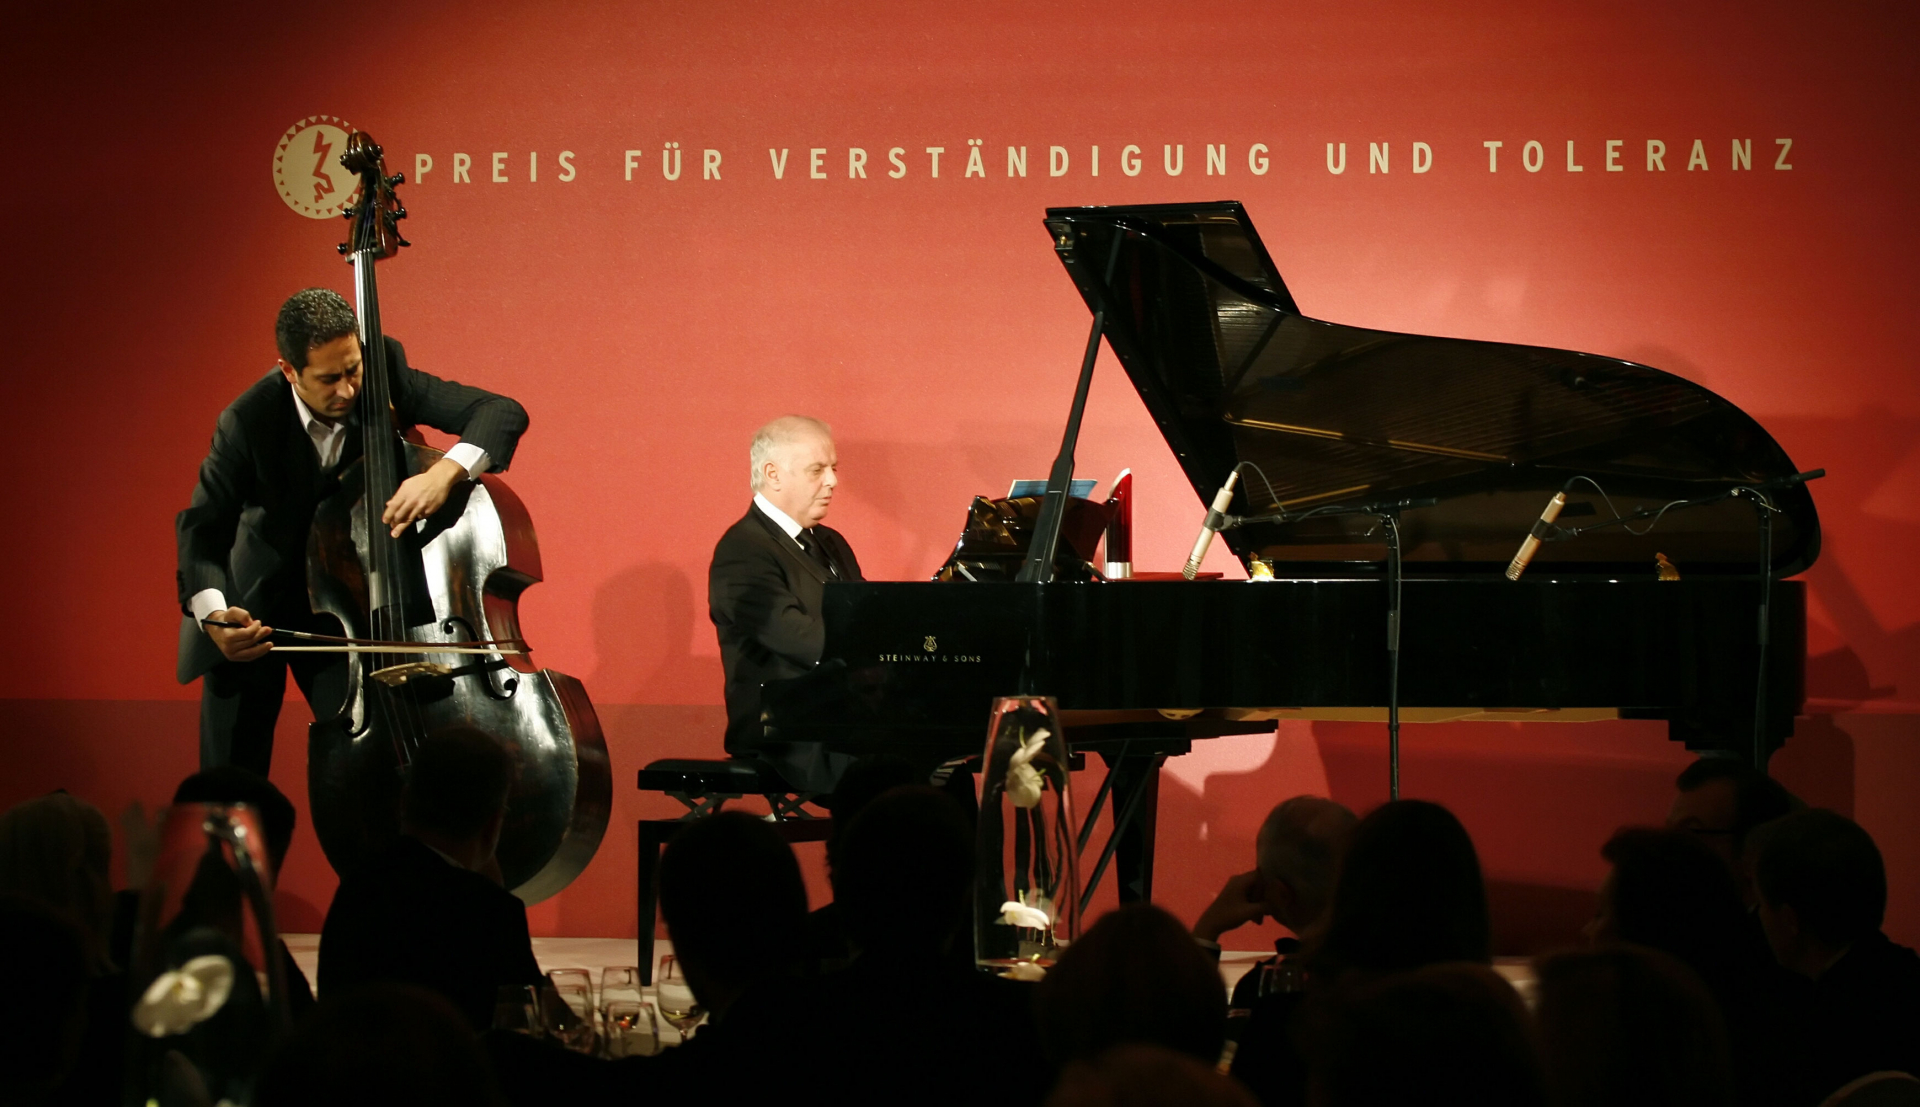 Galadinner 2006, Concert with Daniel Barenboim (piano) and Nabil Shehata (Upright bass)